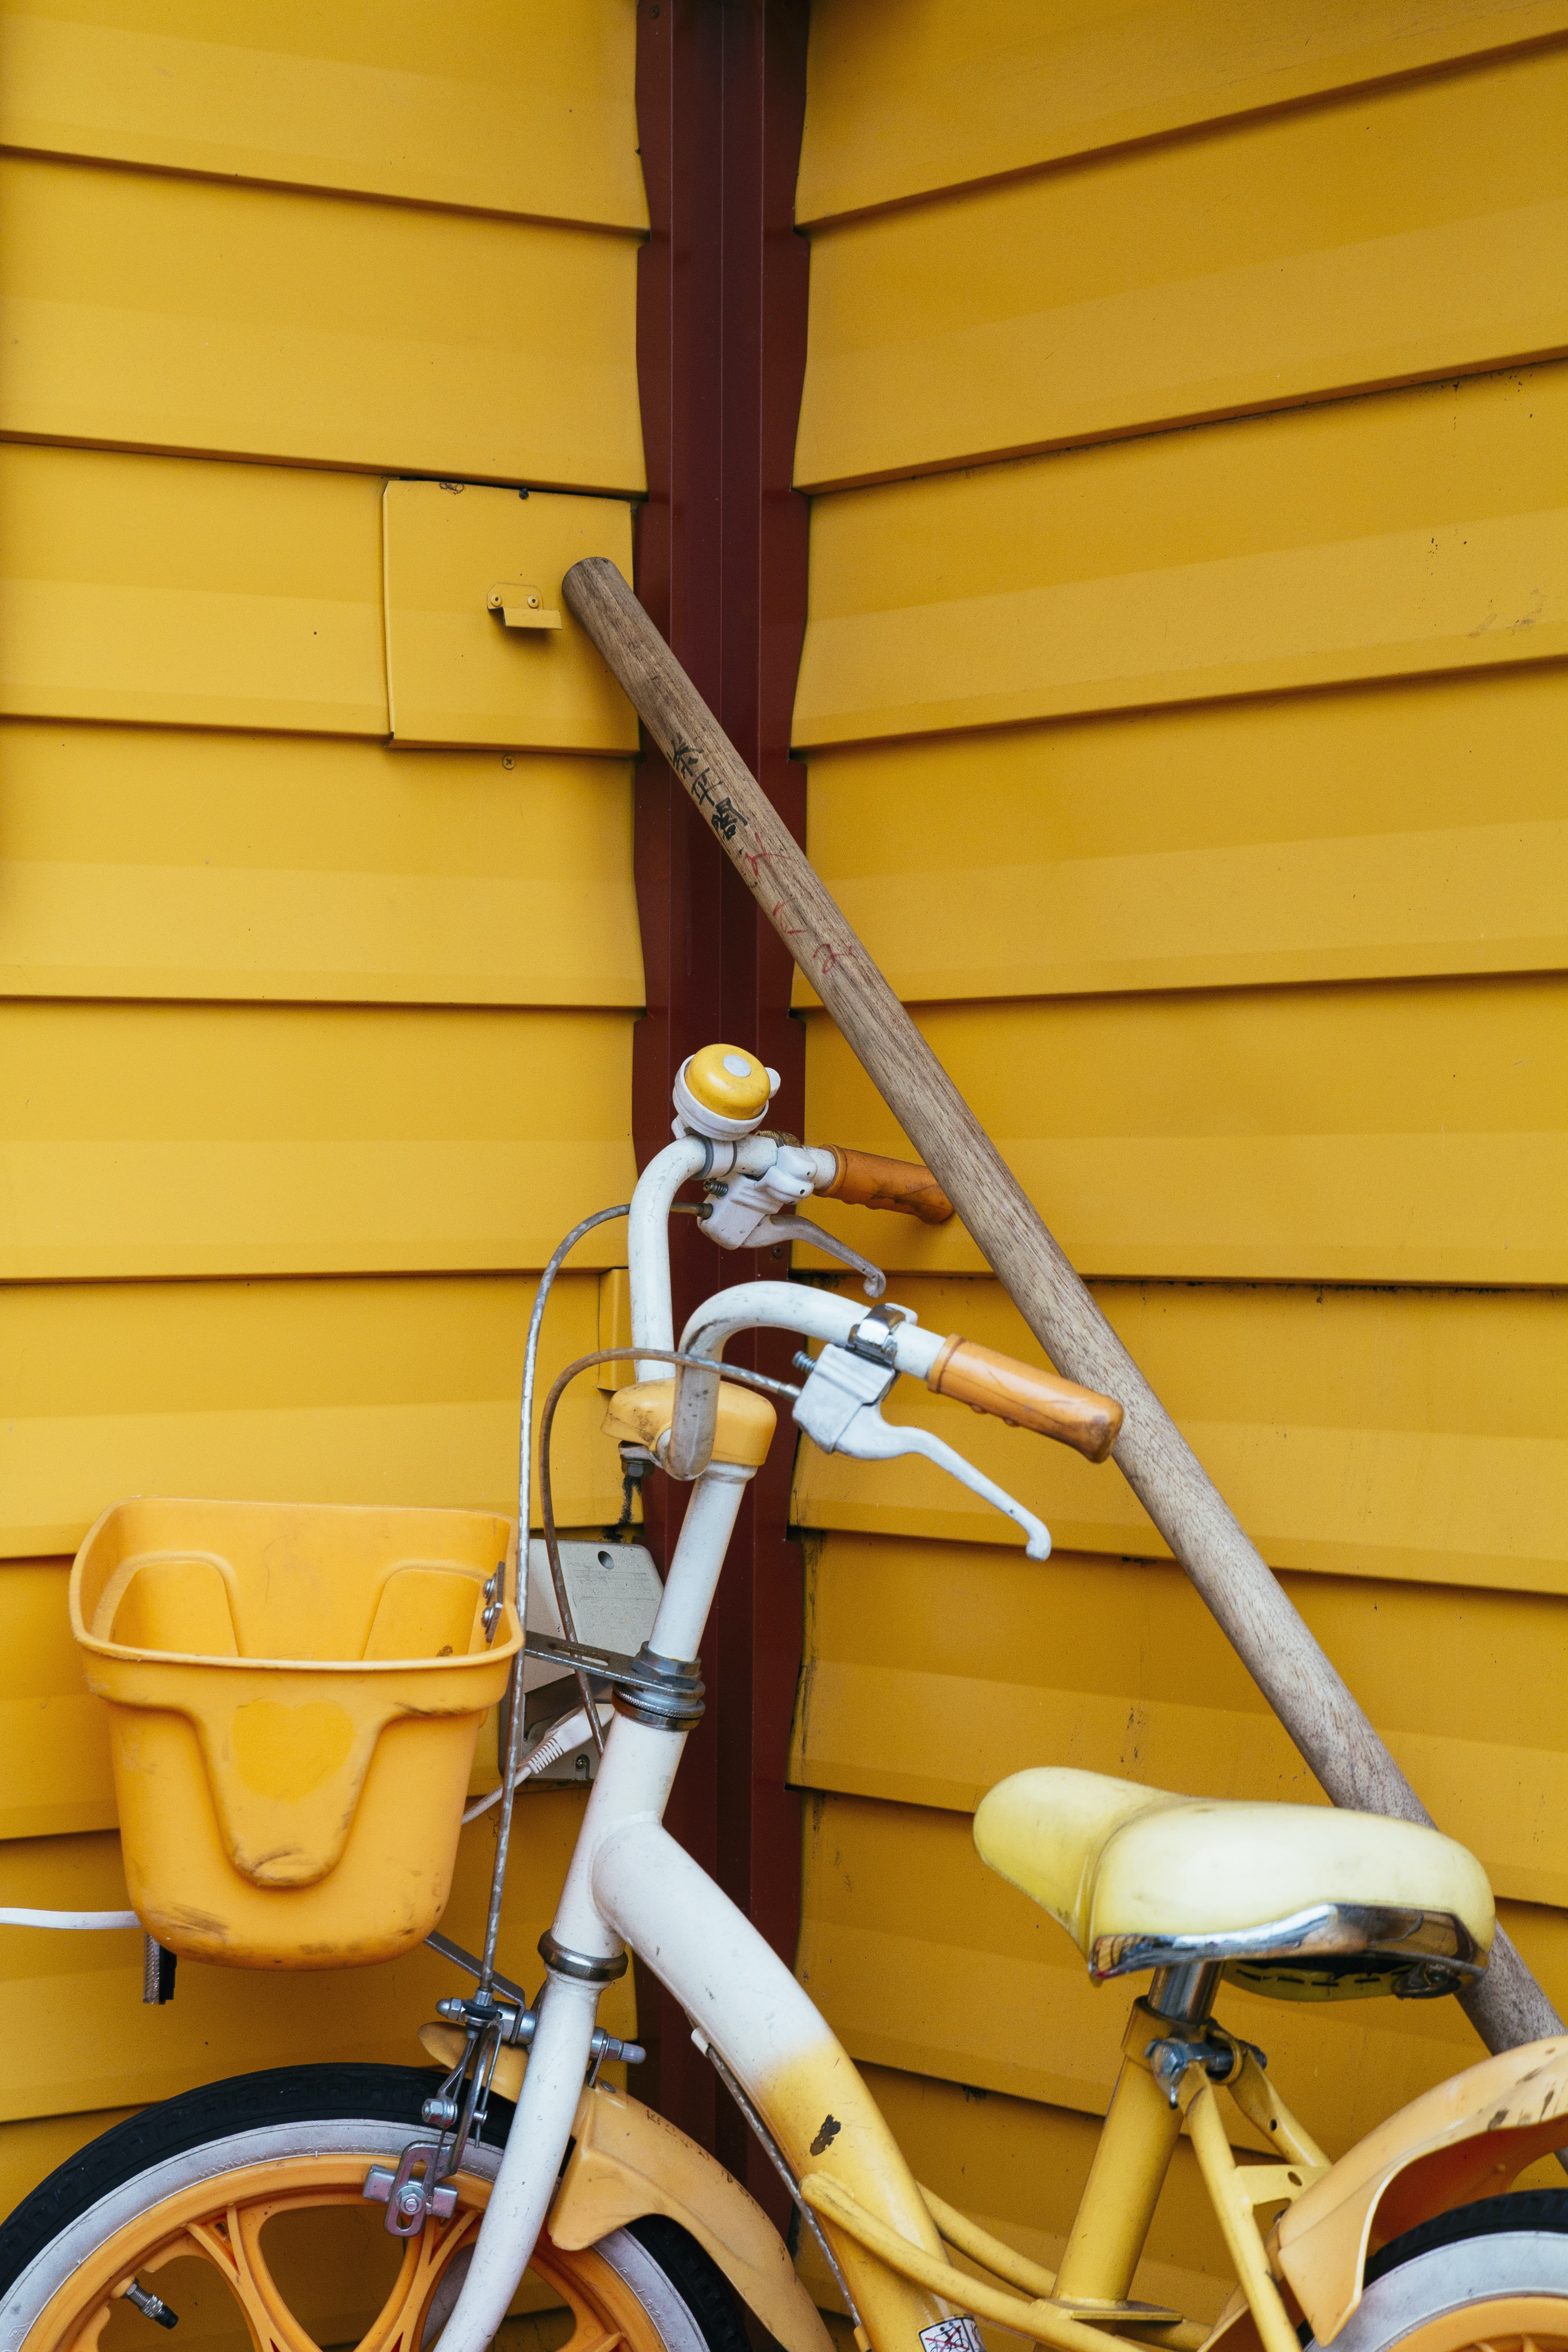 white and yellow bicycle beside brown wooden pole